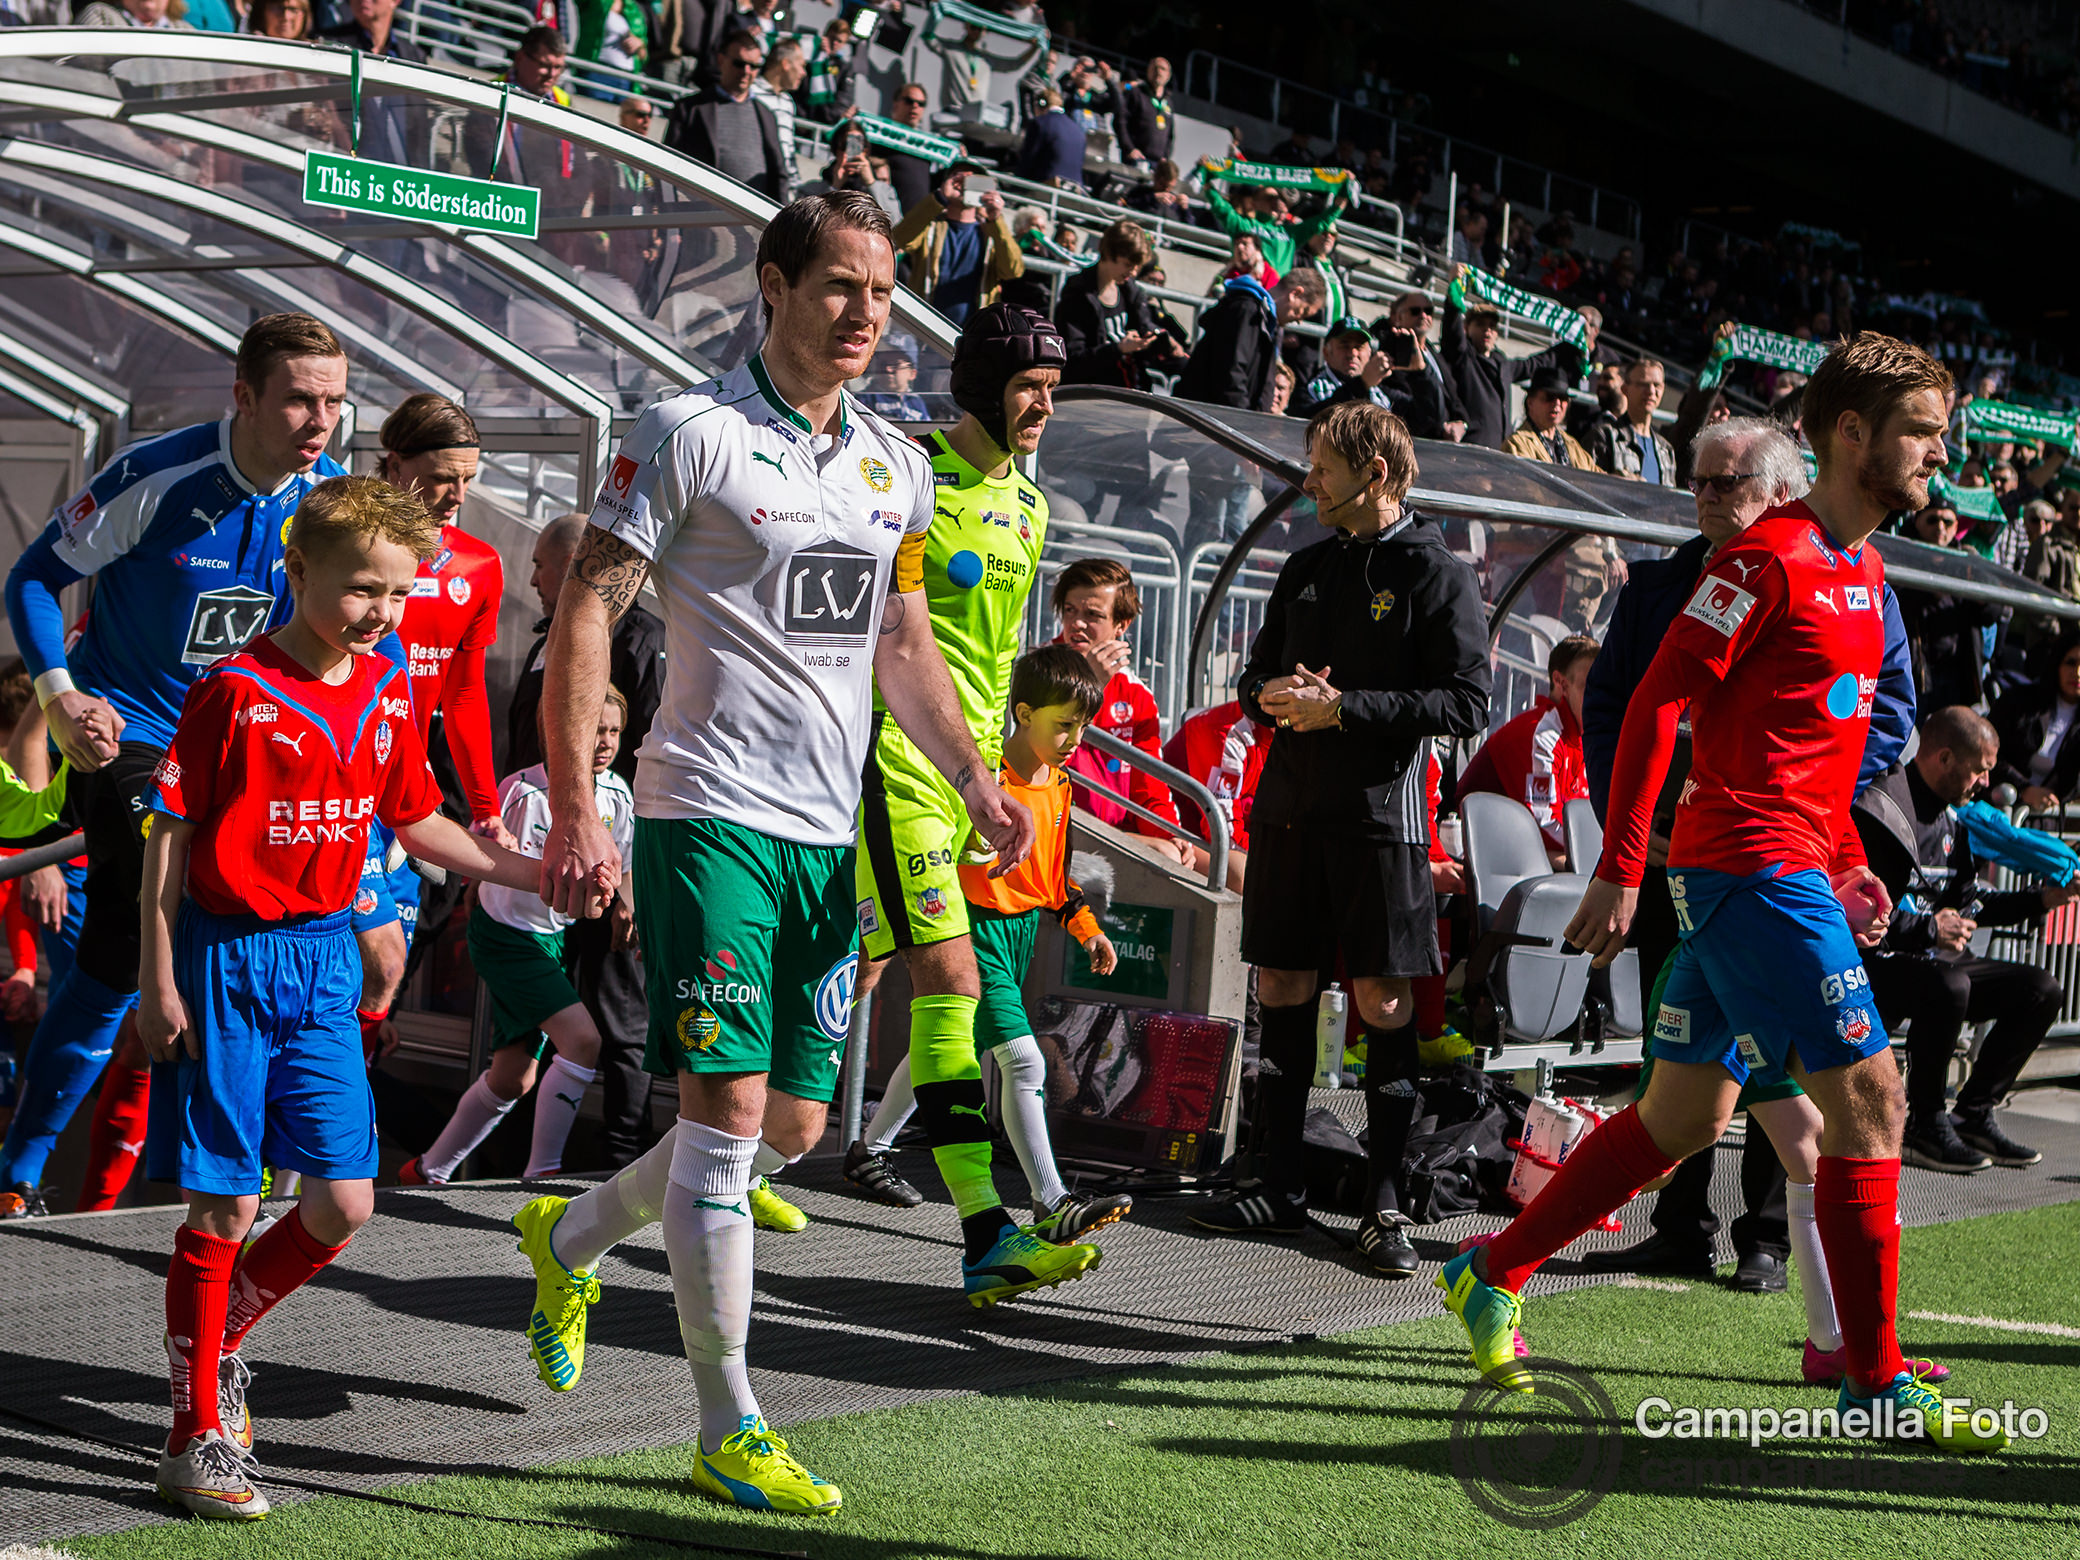 Hammarby crushes Helsingborg - Michael Campanella Photography